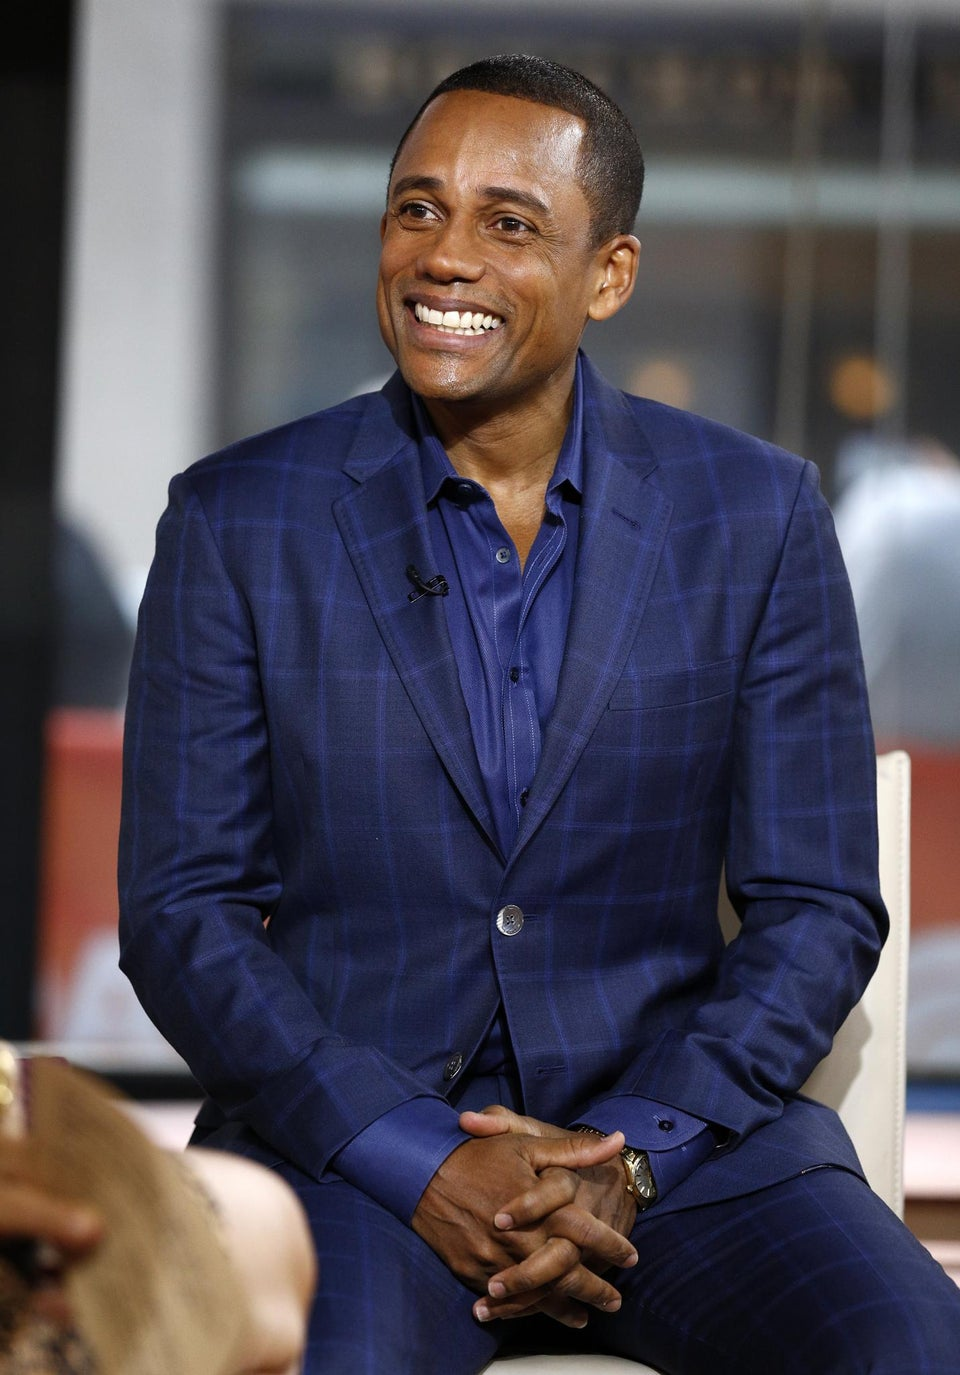 EXCLUSIVE: Hill Harper on His New Book, 'Letters to an Incarcerated Brother'